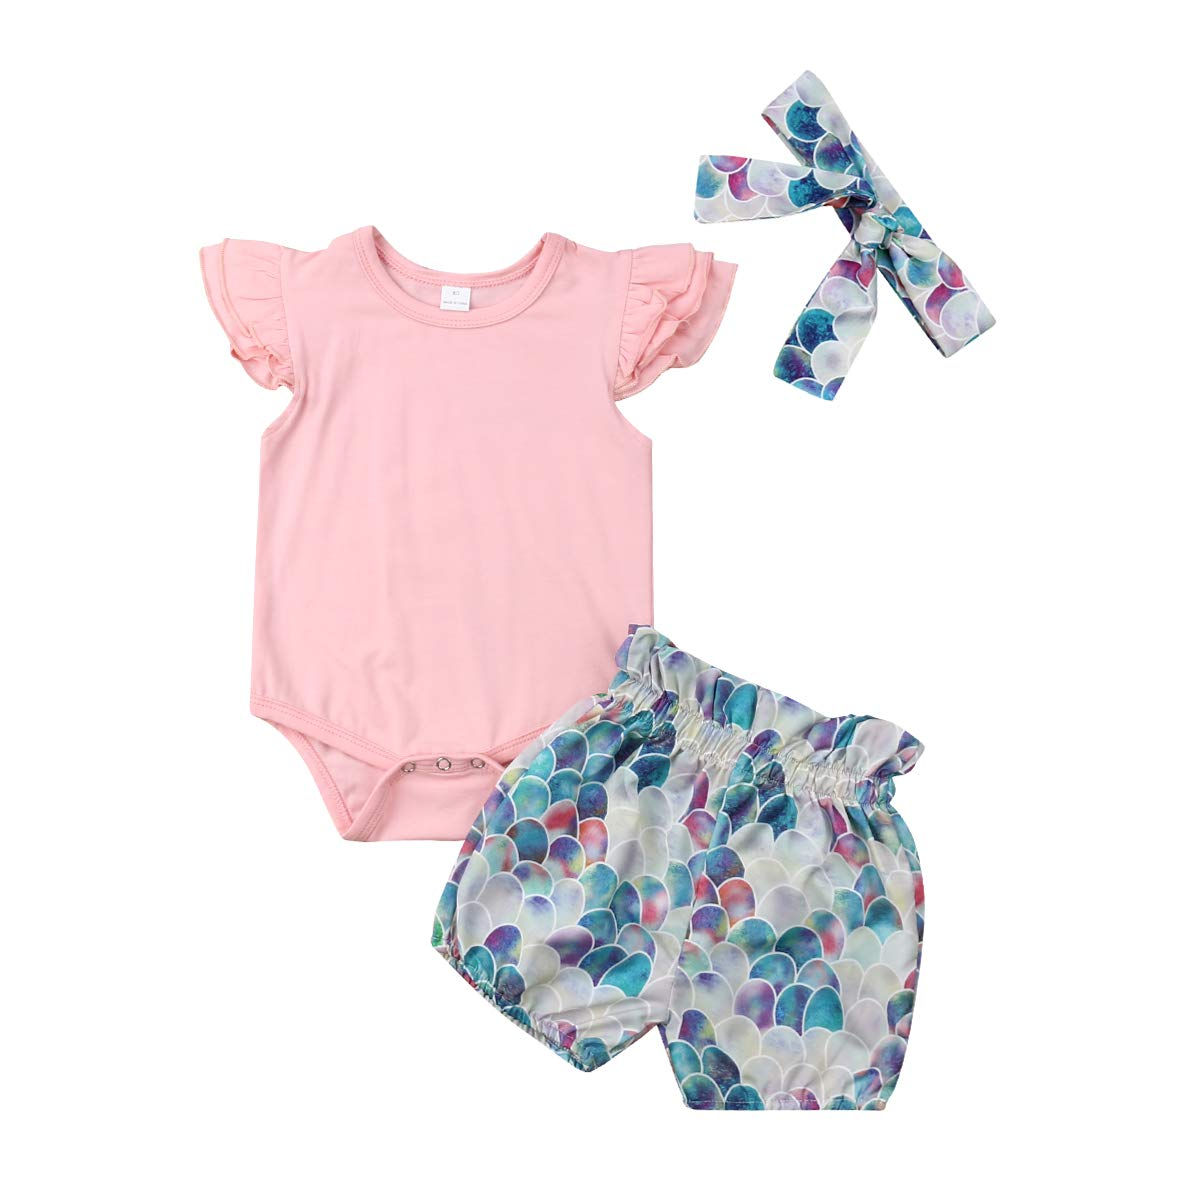 Mermaid Short Pants Clothes Set Short Set Toddler 3PCS Baby Girl Mermaid Outfits Organic Cotton Romper Bodysuits Jumpsuit